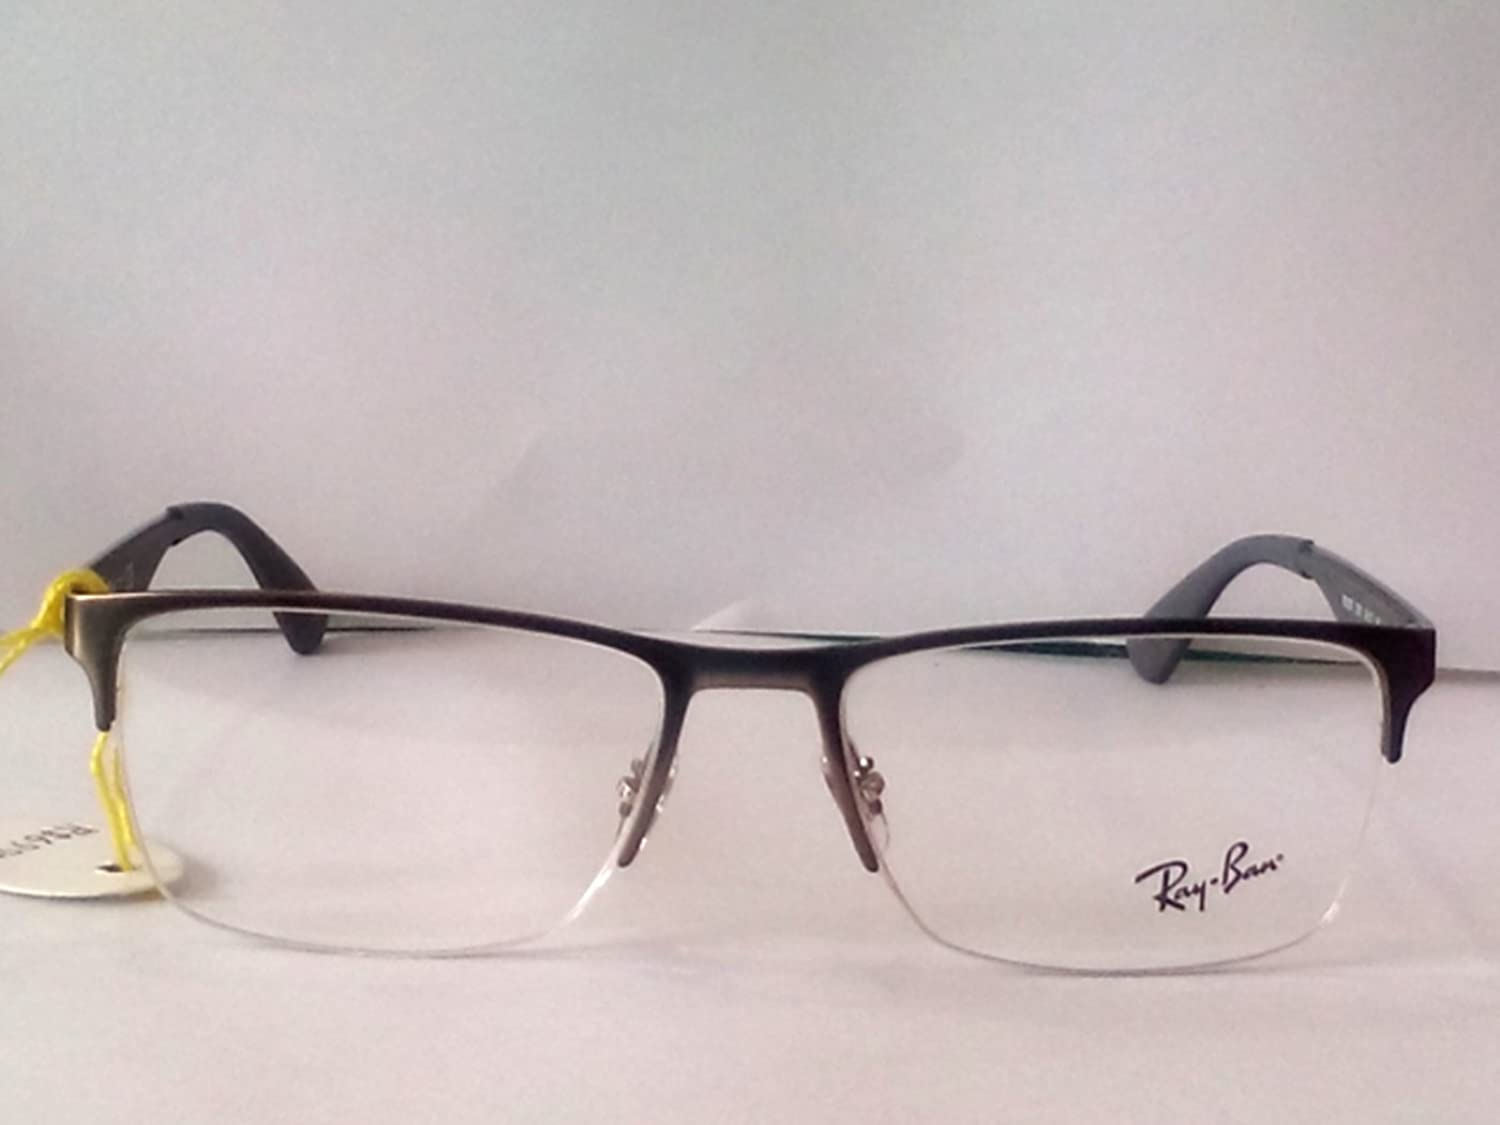 ray ban spectacles cheap  ray ban eyeglasses for men rx6335 cheap